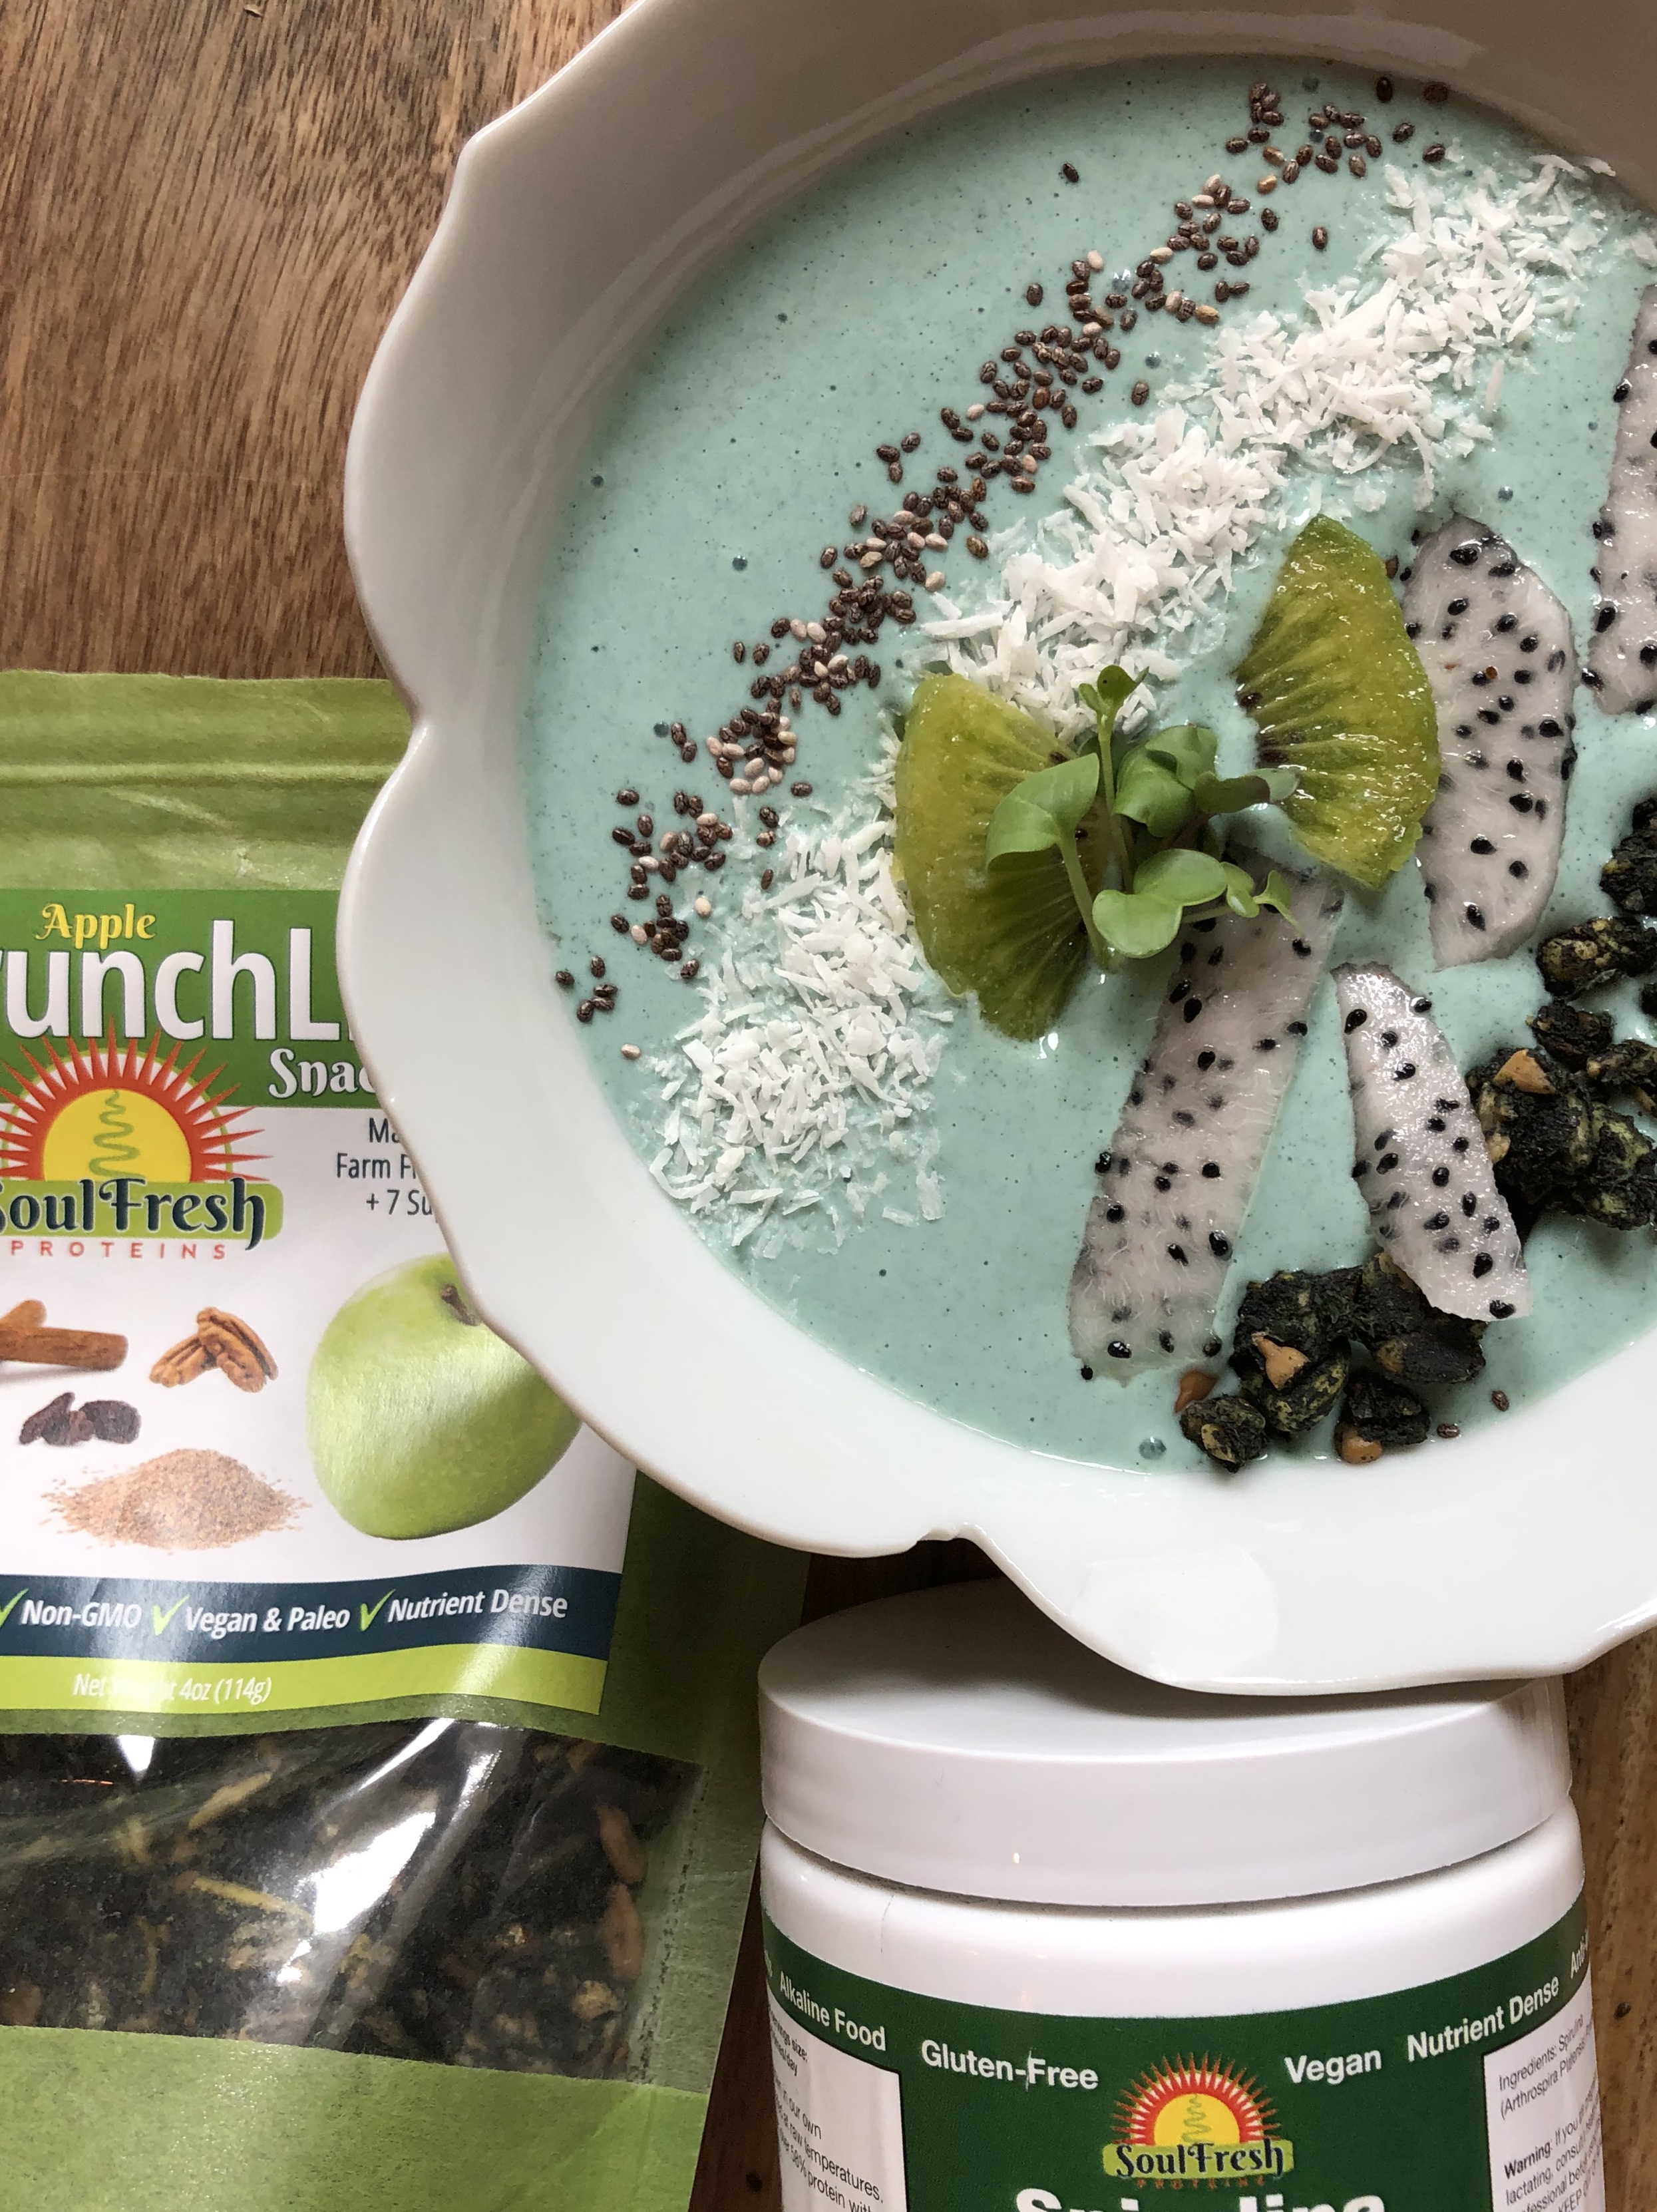 SoulFresh Proteins    Plant based protein: Spirulina    *Save 10% with this code at checkout: rcd10    https://soulfreshproteins.com/products/